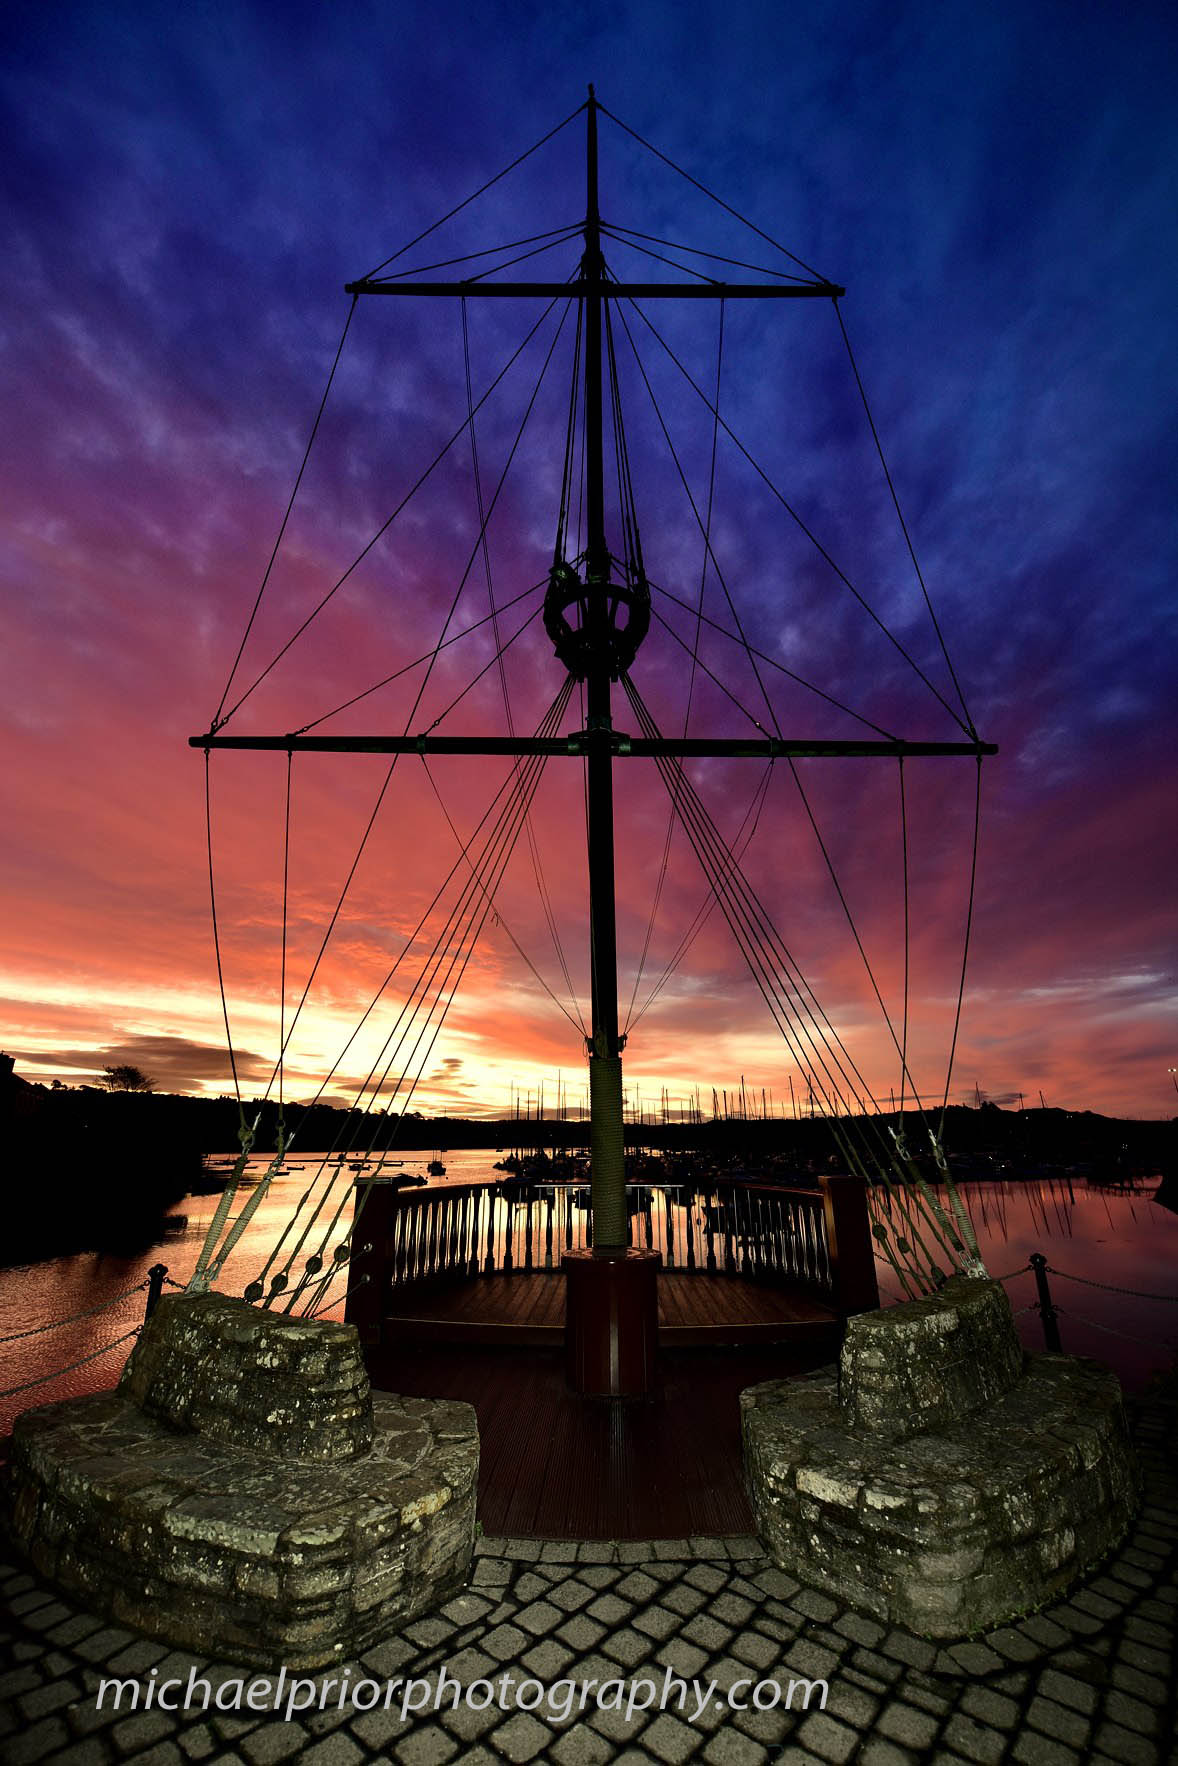 Autumn Sunrise At Kinsale Harbour - Michael Prior Photography